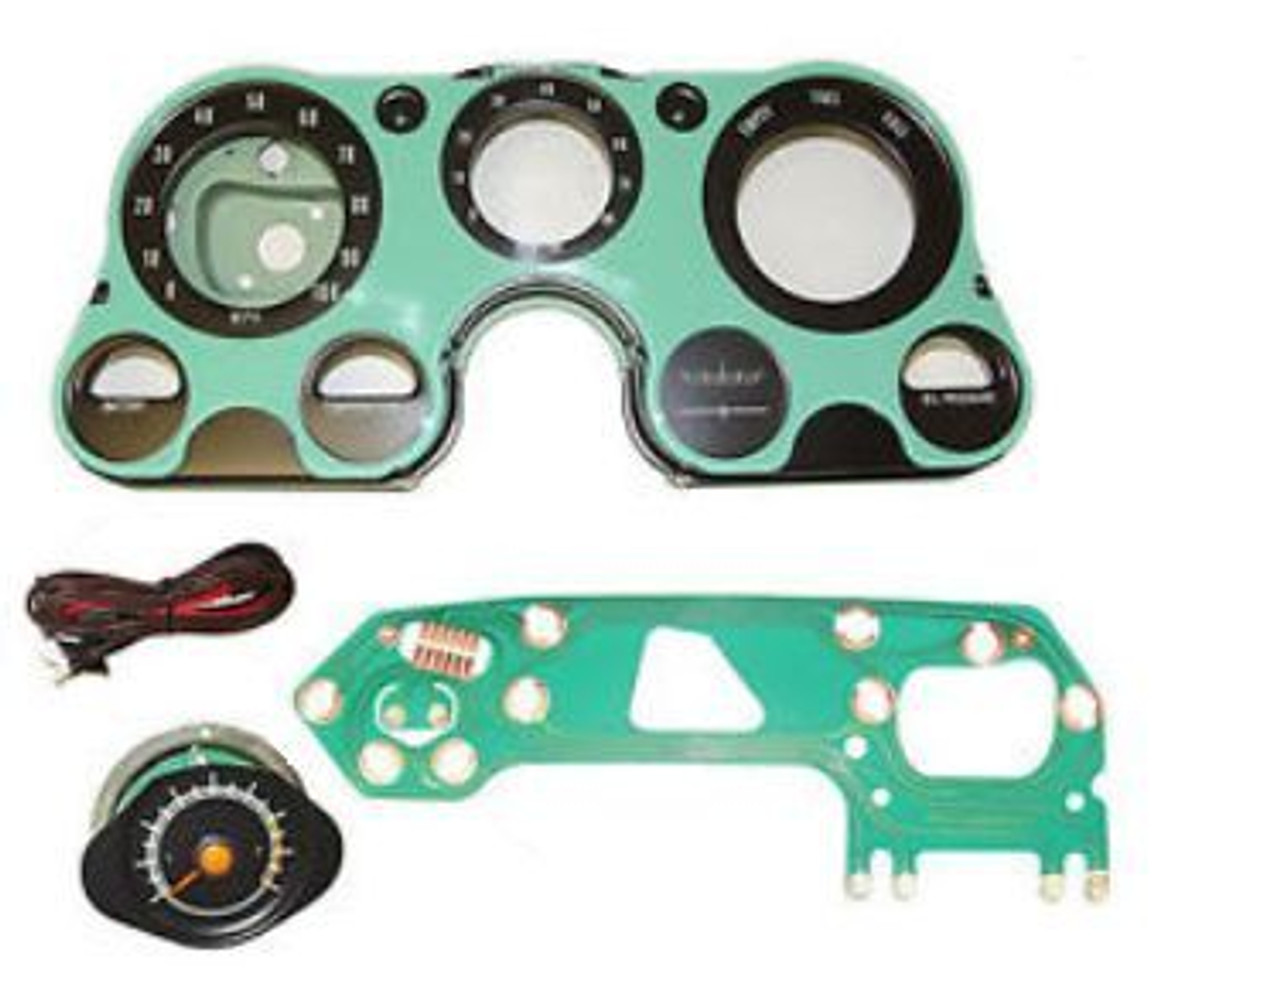 [DIAGRAM_38YU]  1967-72 Chevy/GMC PU Tachometer Conversion Kit. (w/custom 8000 RPM  tachometer)(includes 8000 RPM tachometer, printed circuit, instrument lens,  front and back gauge housings, and tach wiring harness) - Southwest Classics | Chevy Tach Wiring |  | Southwest Classics